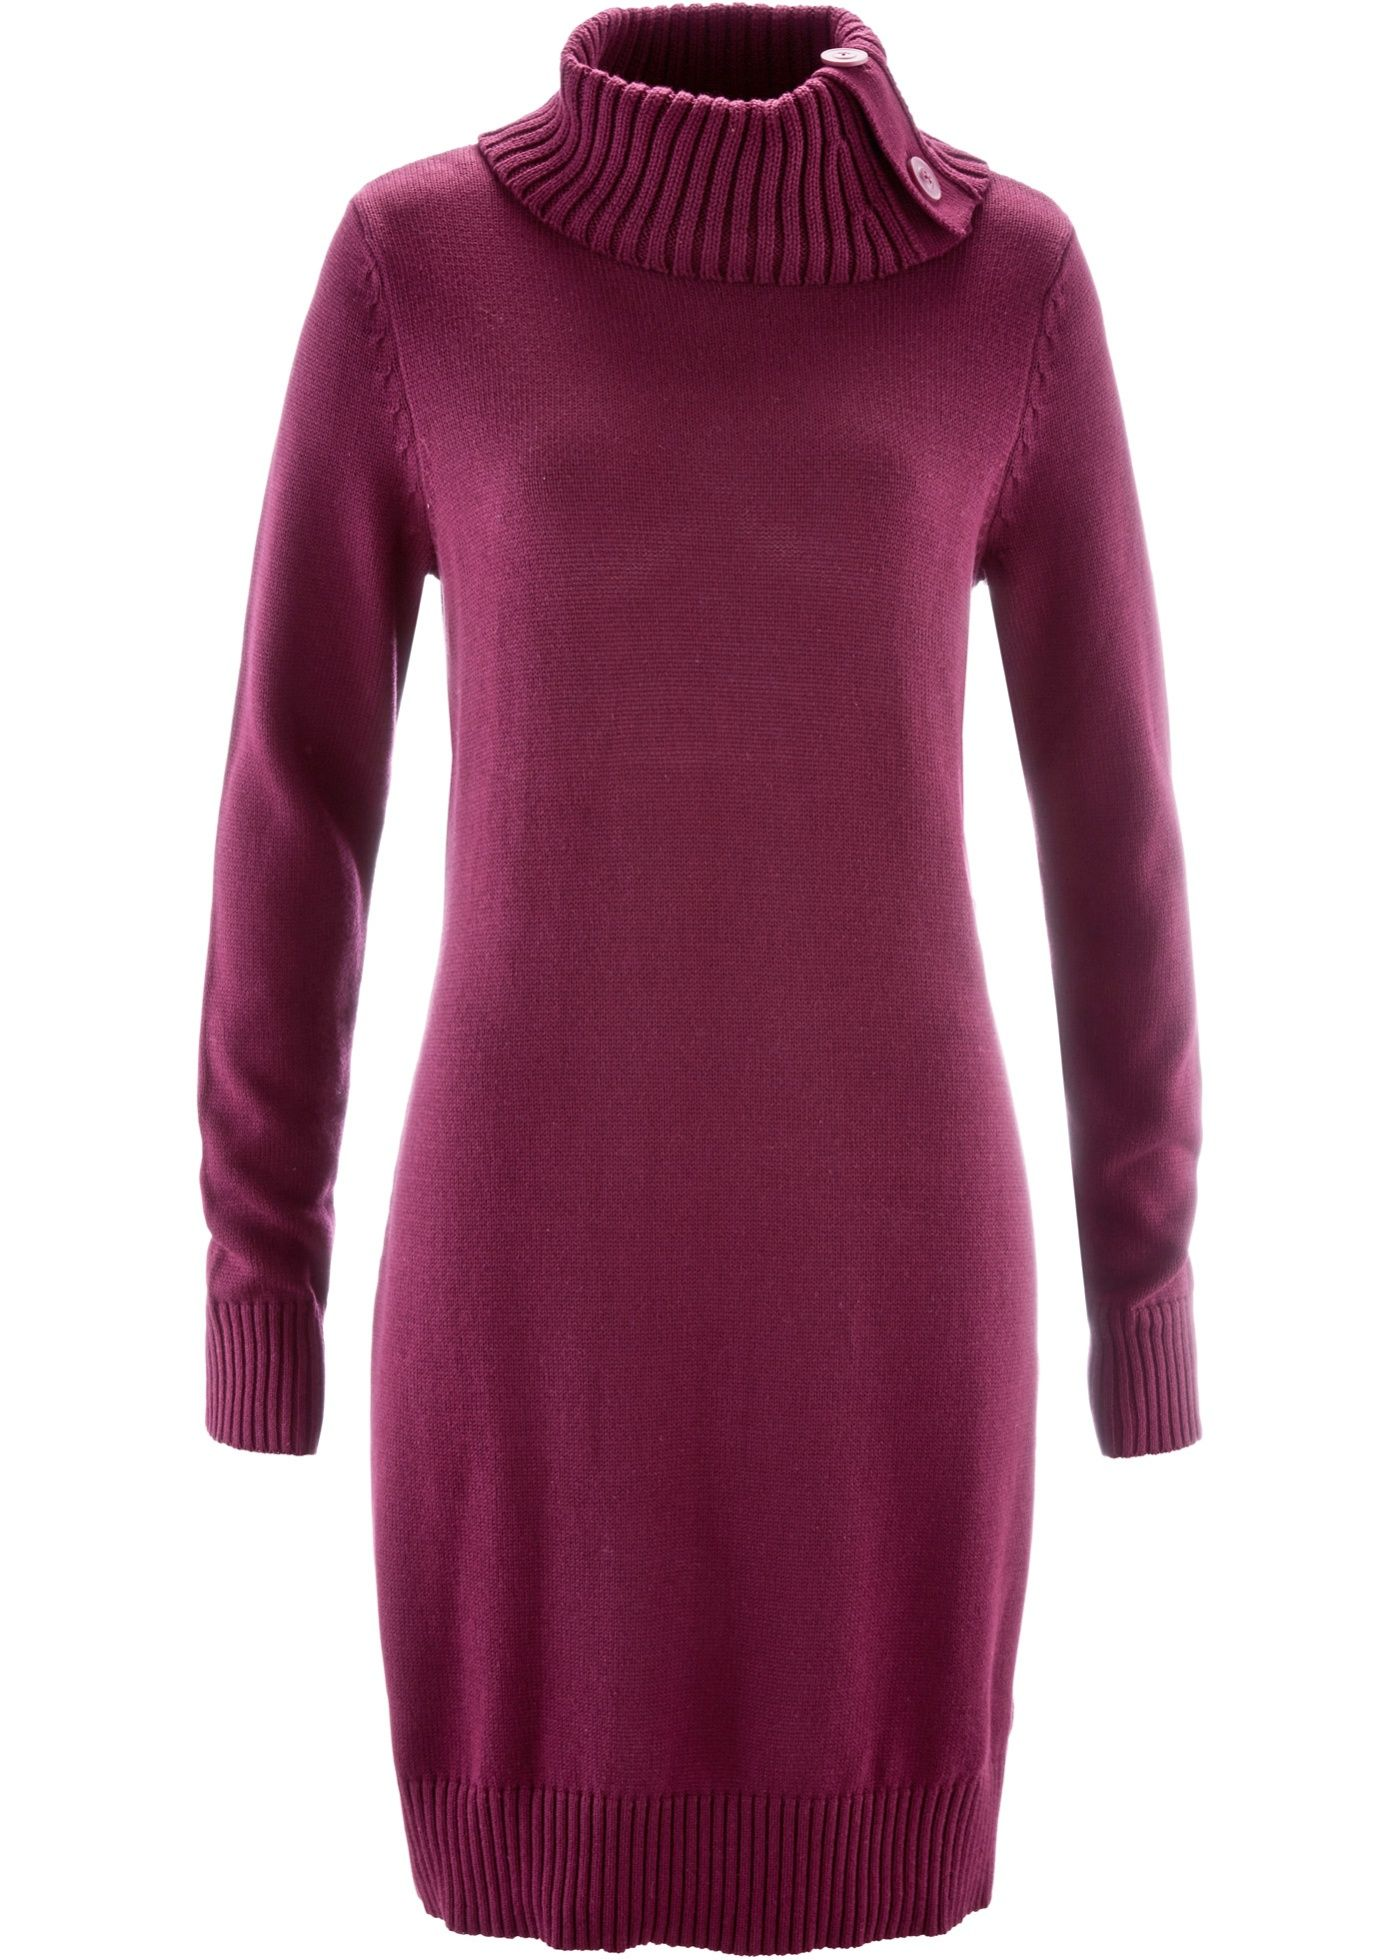 Long Pullover mit Stehkragen   Products in 2019   Pullover